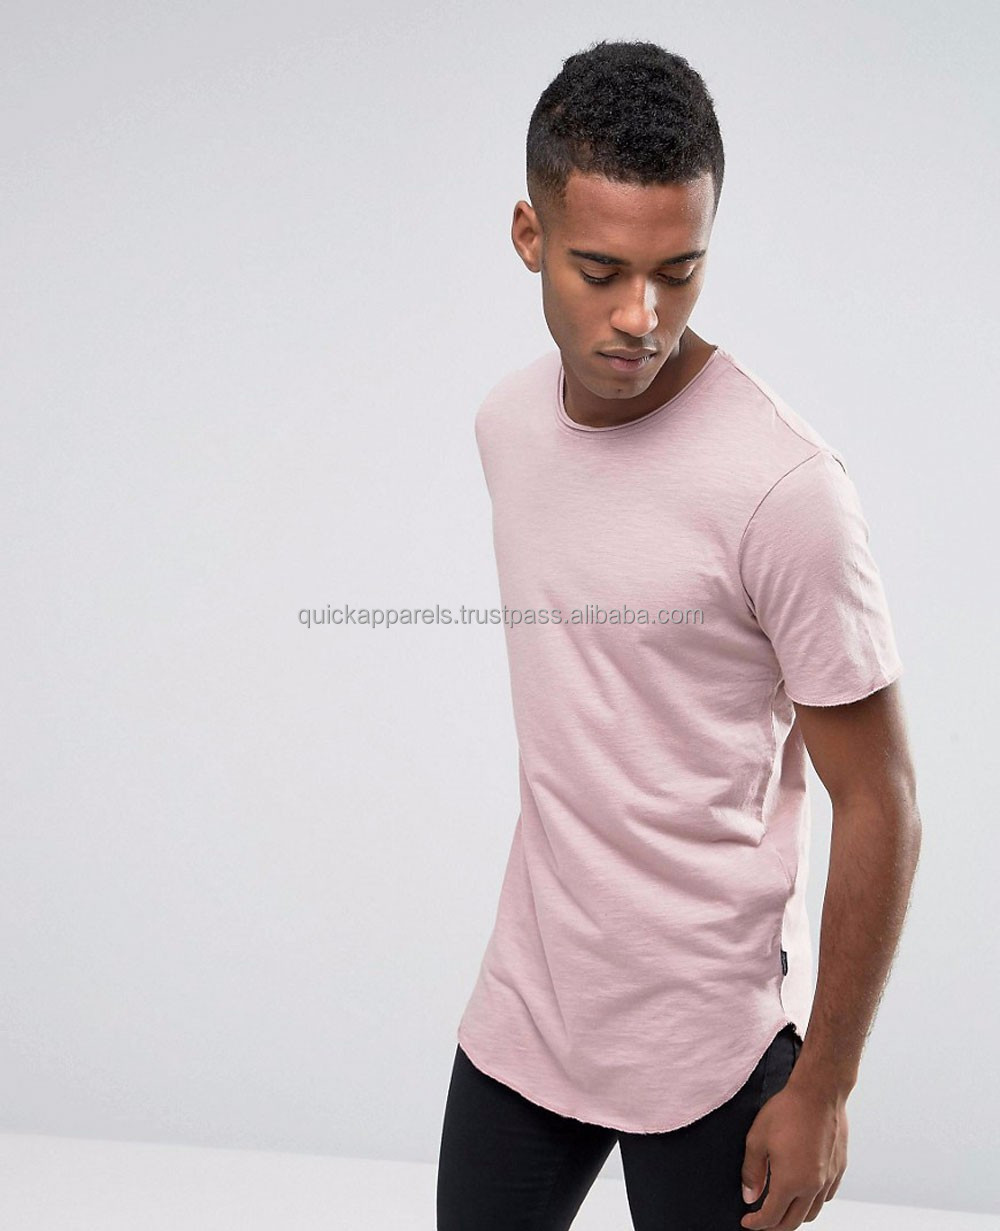 mens wholesale clothing asymmetric hem t-shirt fashion style long sleeve longline plain custom t shirt